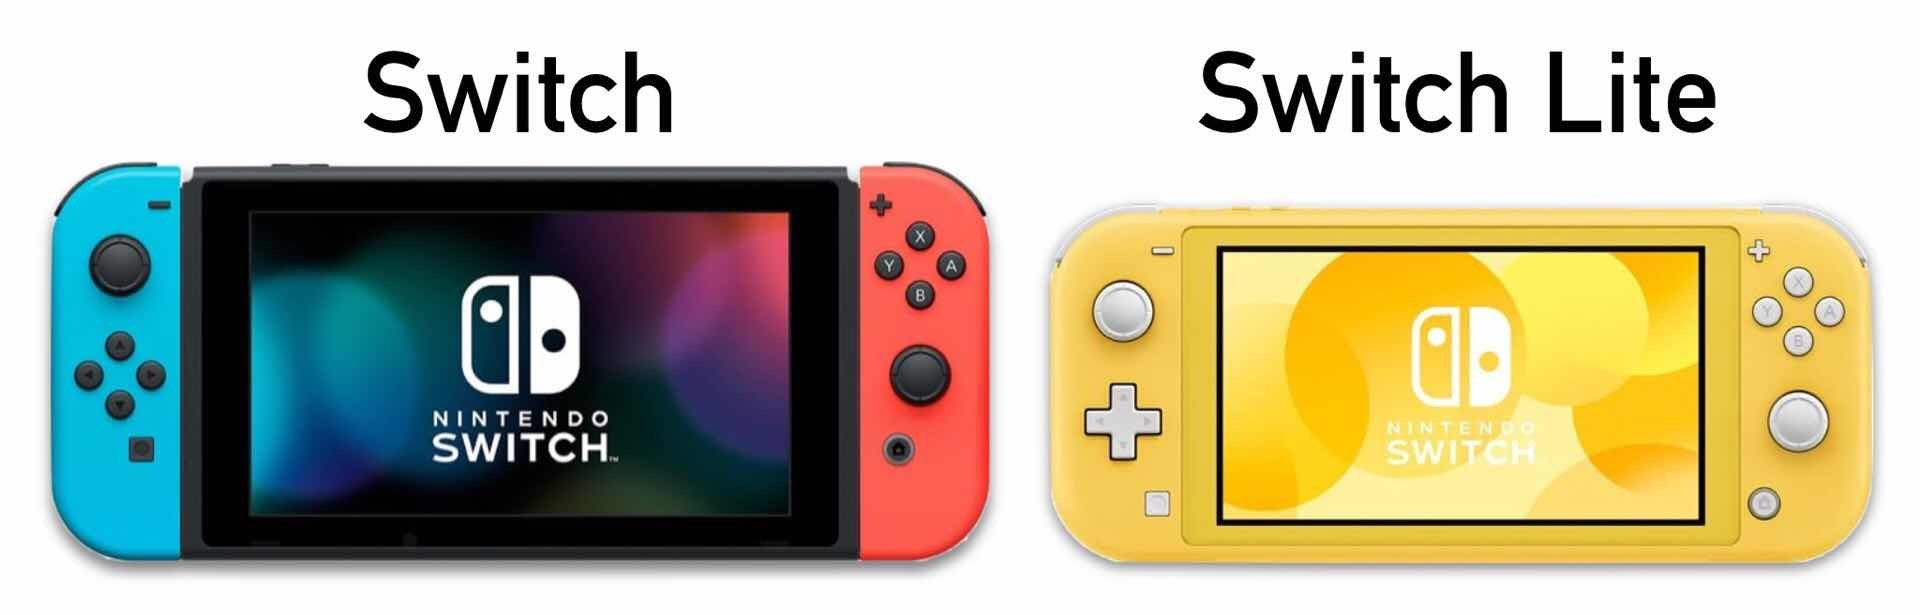 nintendo-switch-lite-launch-guide-size-comparison